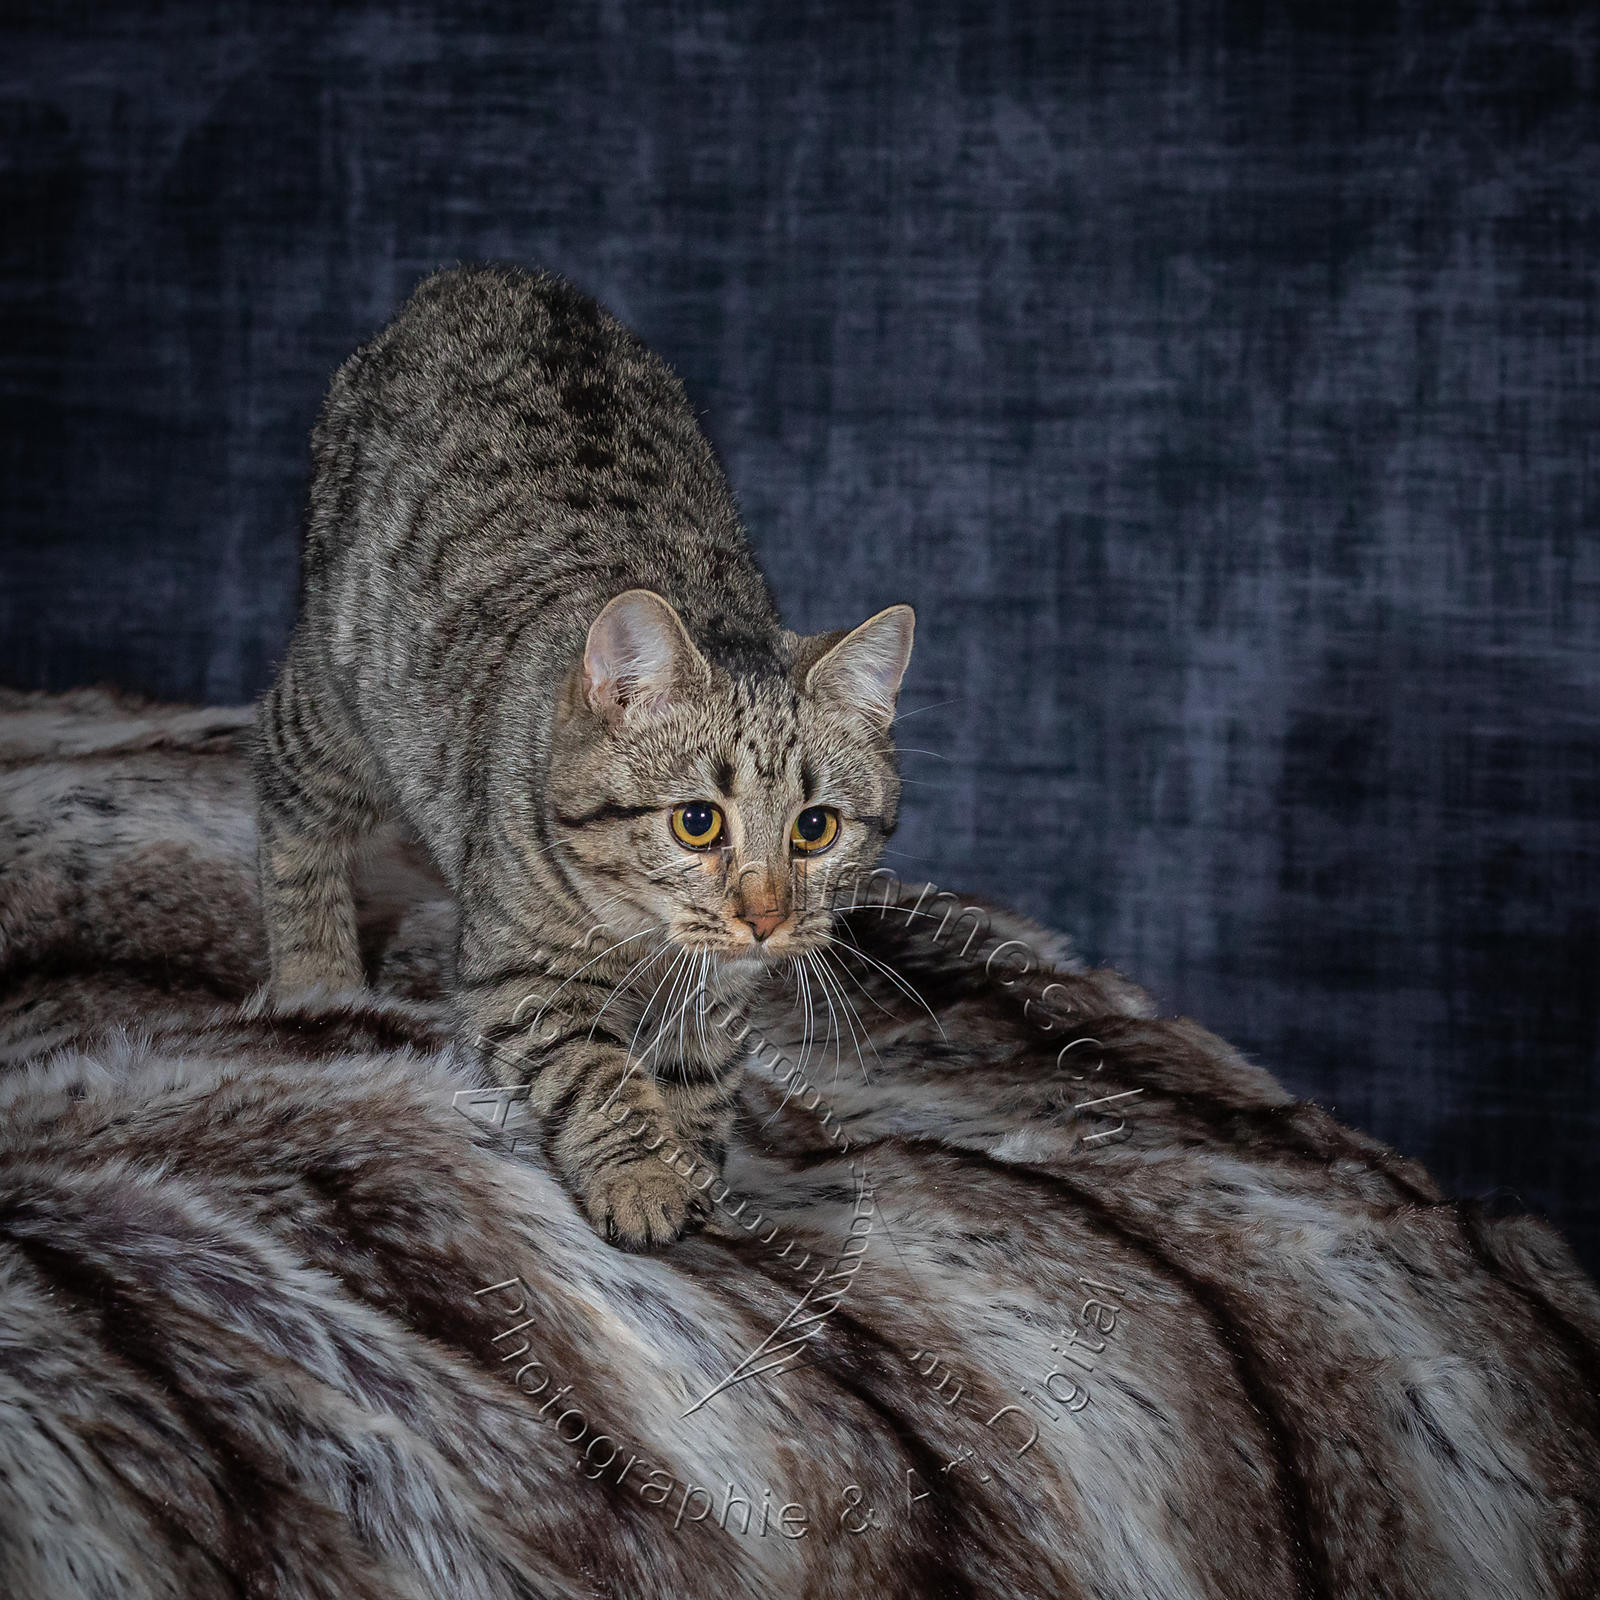 Photographie-Alain-Thimmesch-Chat-1089